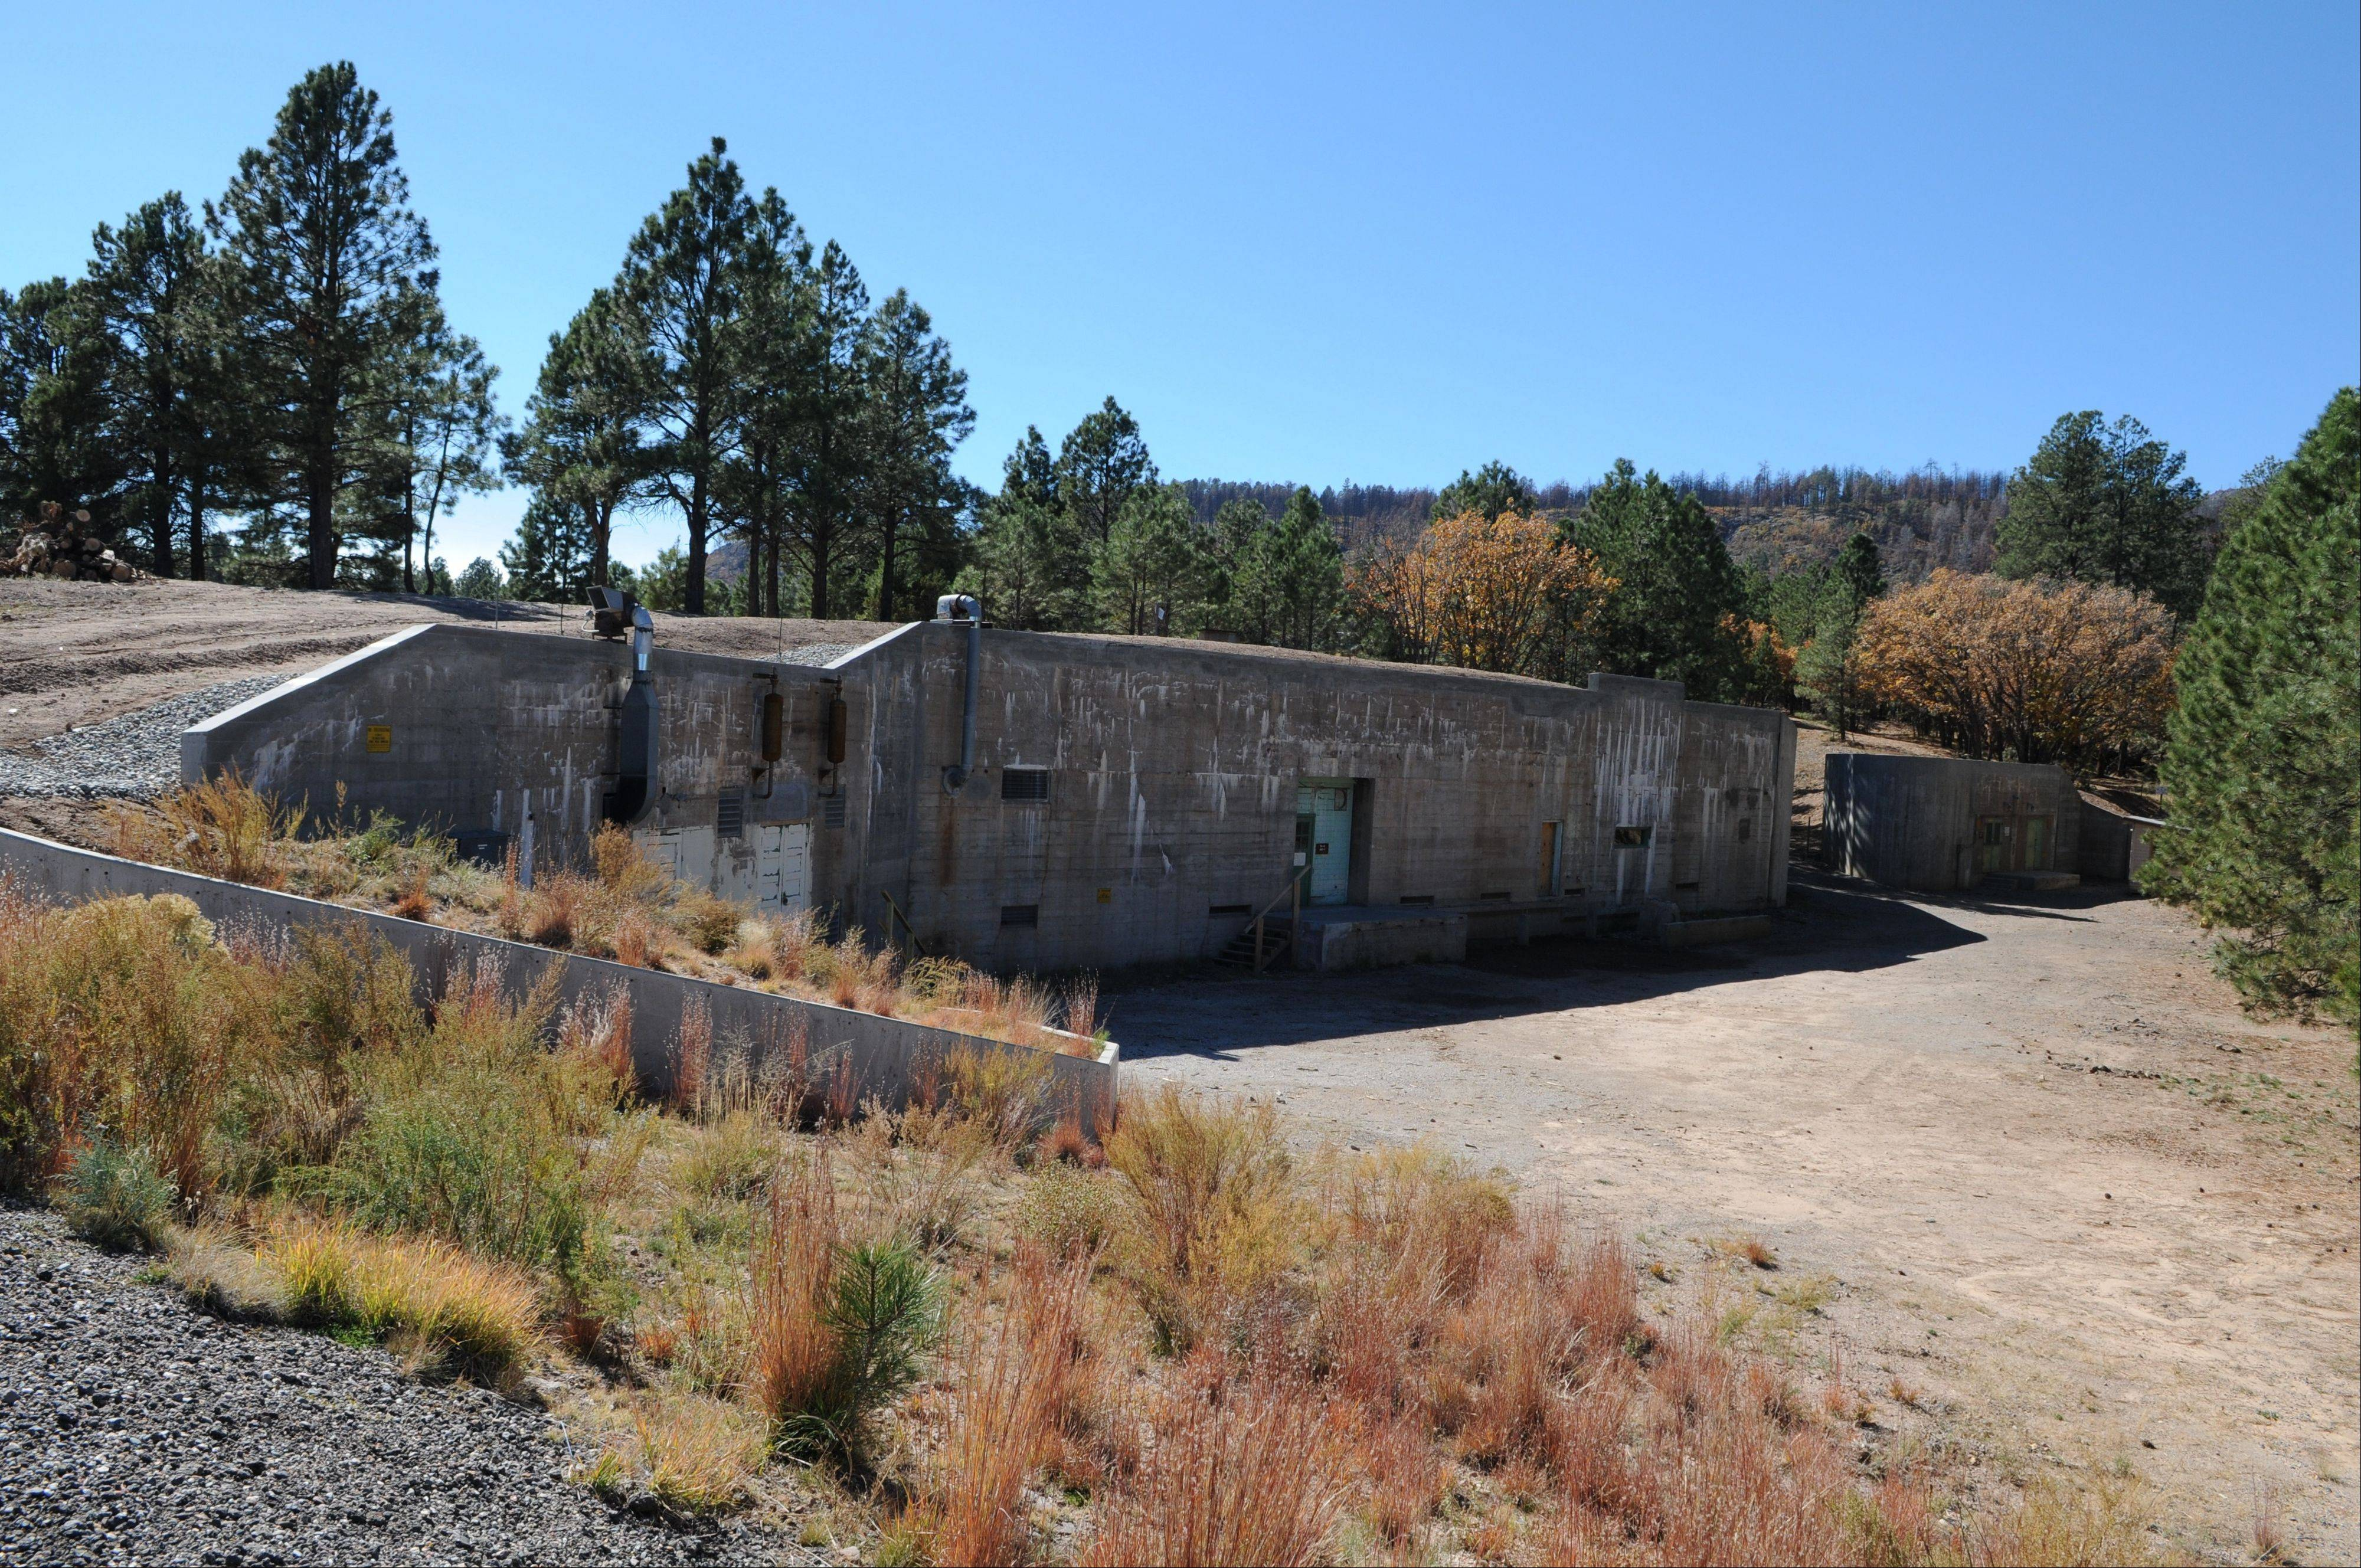 This �gun site� is where the bomb that was dropped on Hiroshima was assembled. The iconic areas scattered in and around the modern day Los Alamos National Laboratory are being proposed as sites for a new national park commemorating the Manhattan Project.